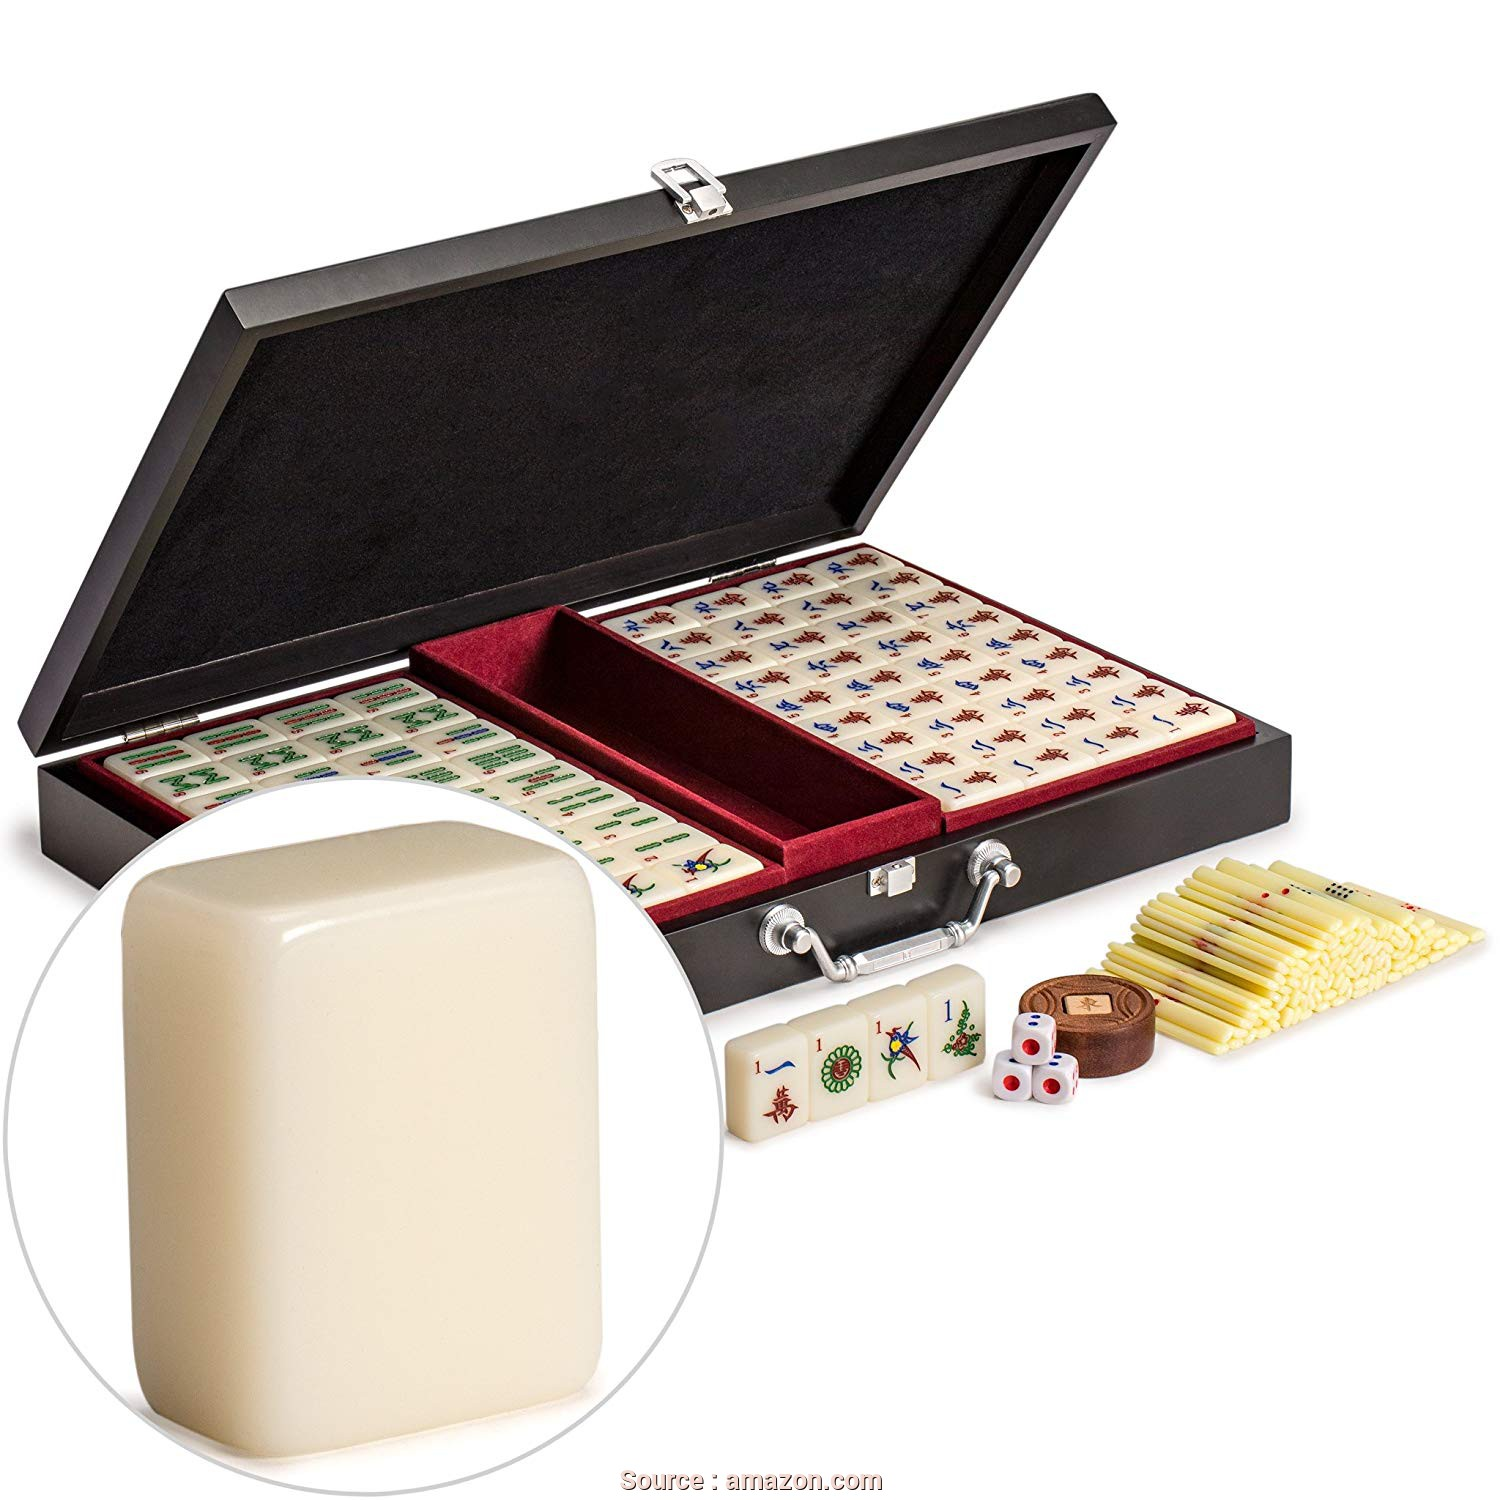 Divano, Jong Amazon, Ideale Yellow Mountain Imports Chinese Mahjong (Mah Jong, Mahjongg, Mah-Jongg,, Jongg, Majiang), With Numbered Tiles, Accessories,, Compact Wooden